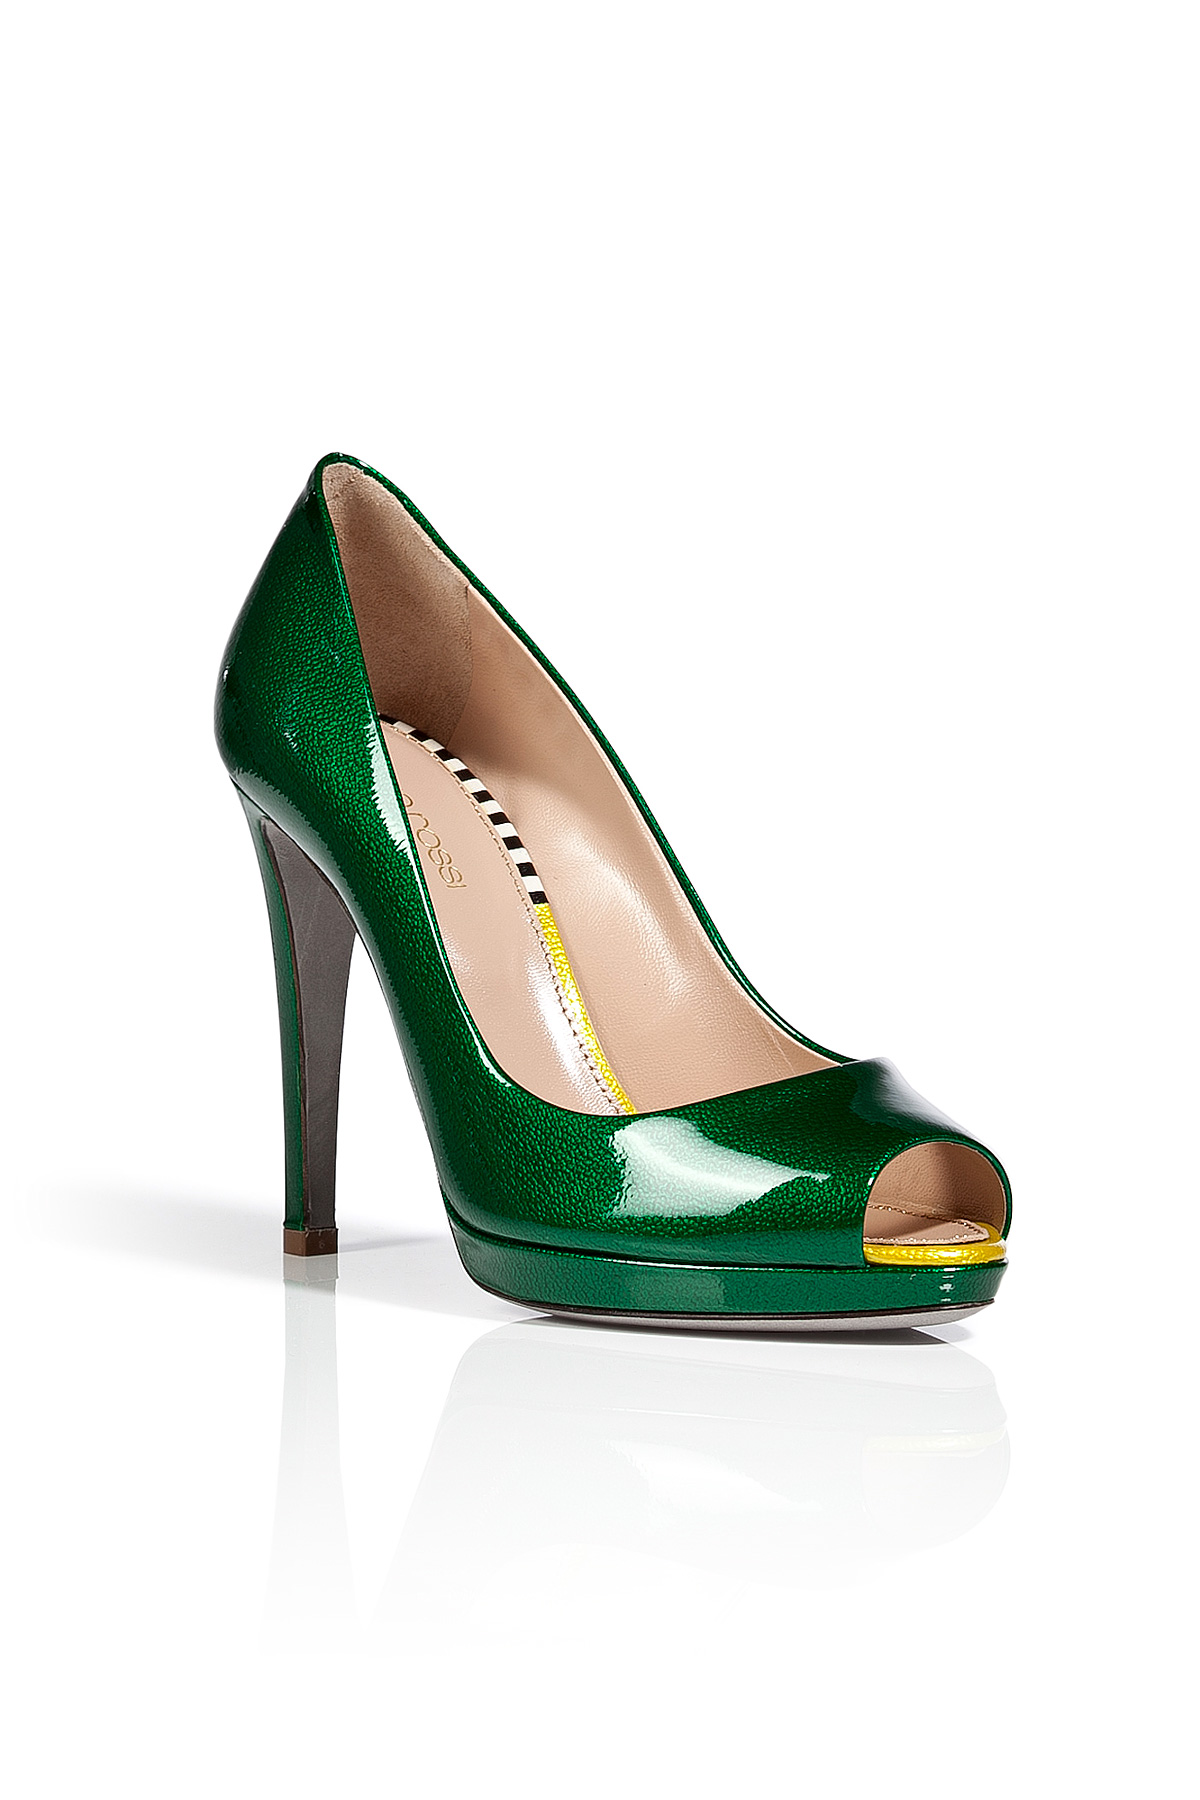 You searched for: green patent leather! Etsy is the home to thousands of handmade, vintage, and one-of-a-kind products and gifts related to your search. No matter what you're looking for or where you are in the world, our global marketplace of sellers can help you .